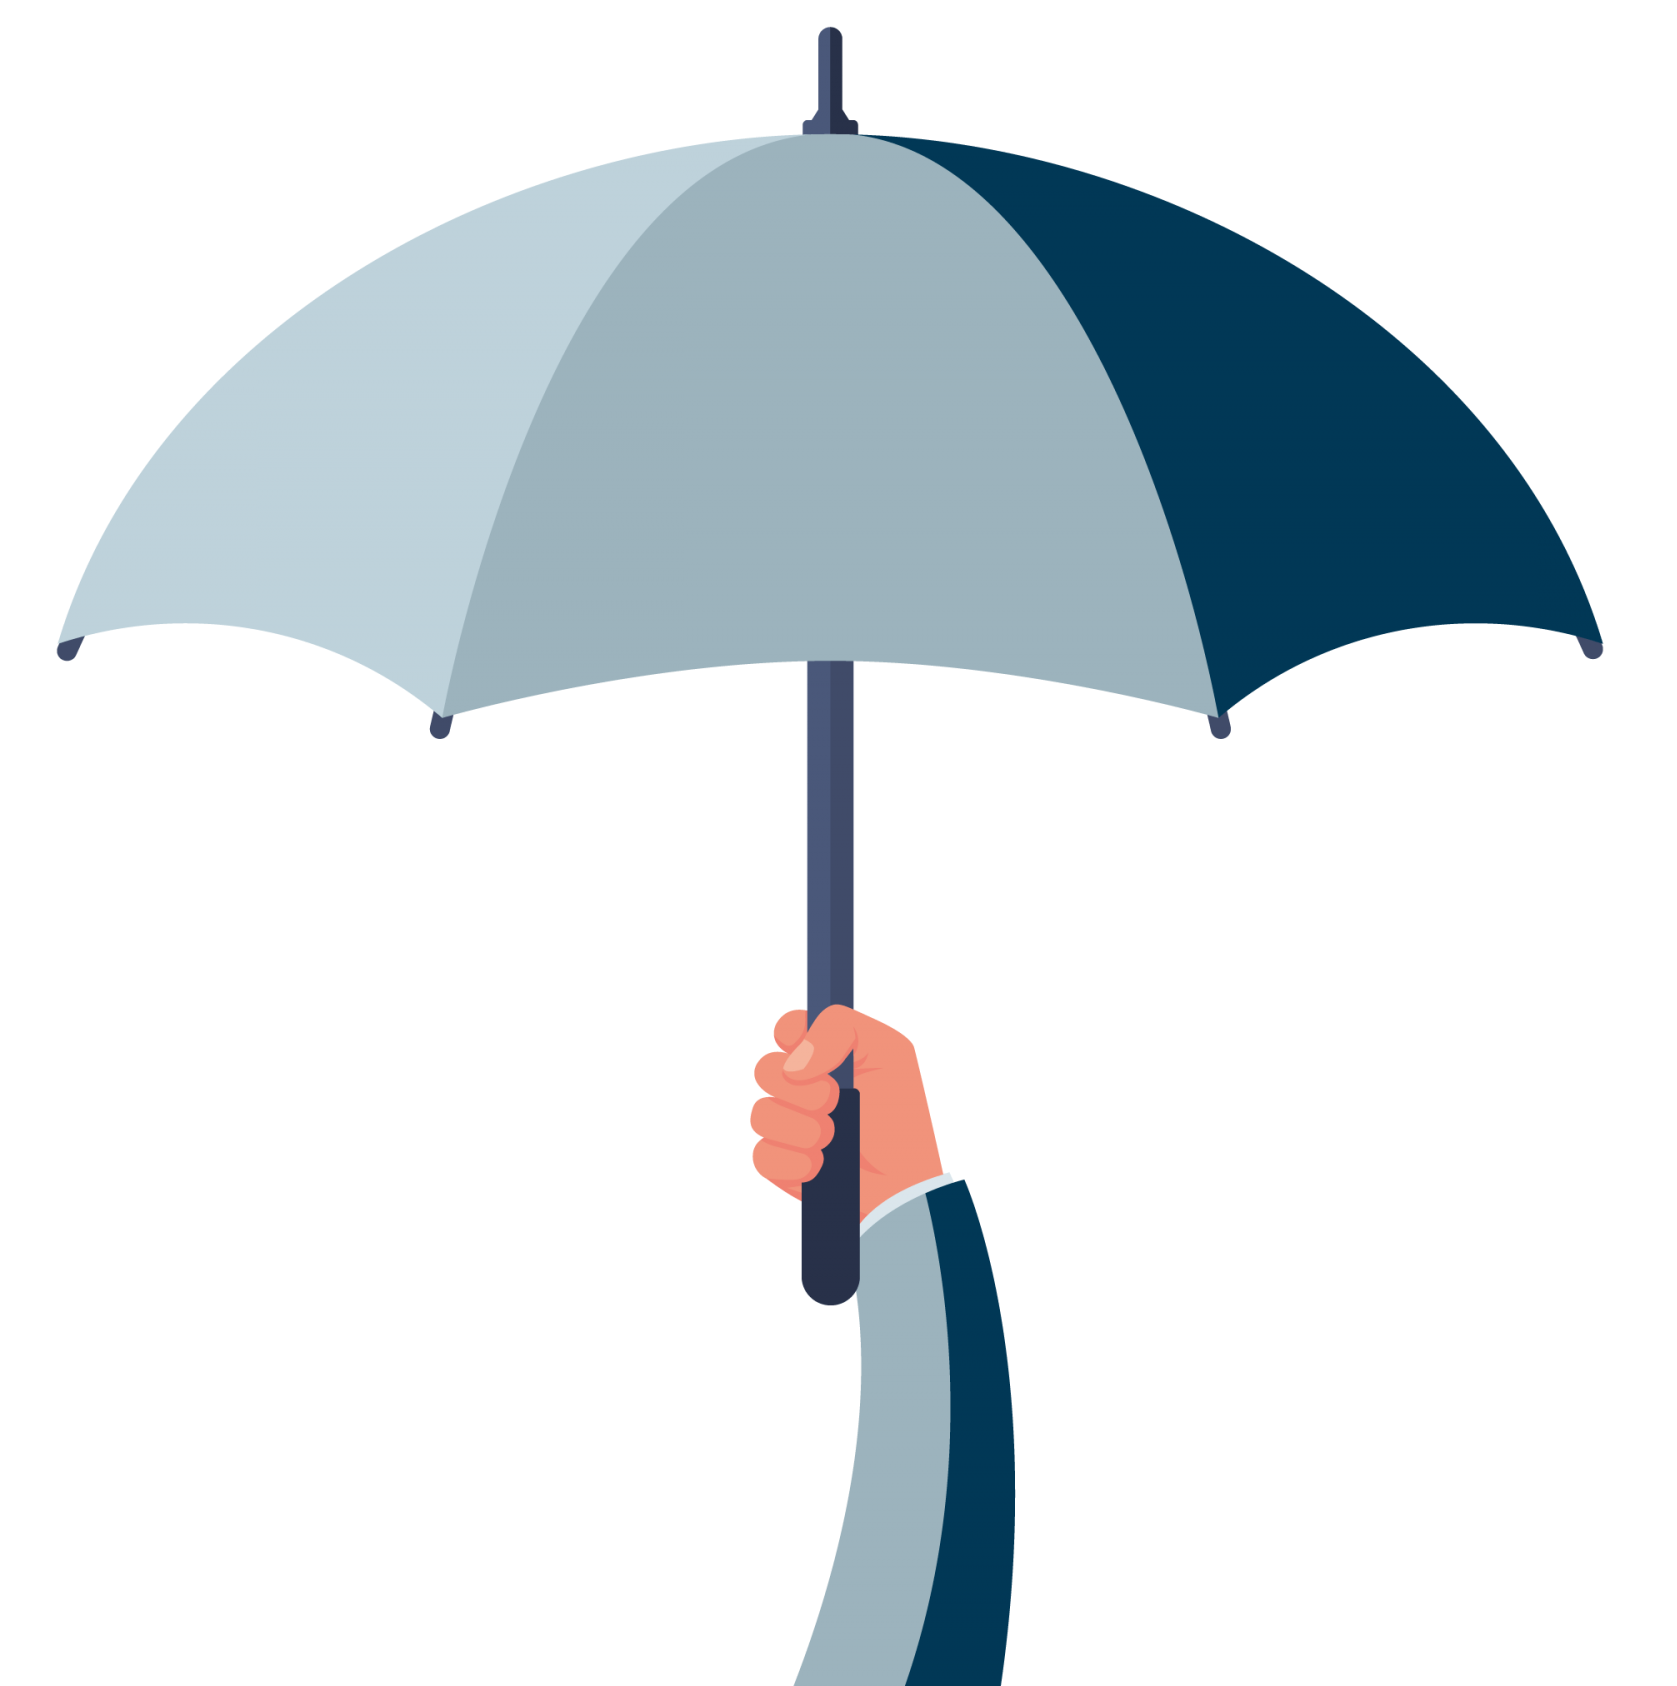 umbrella, coverage, insurance, shaffer